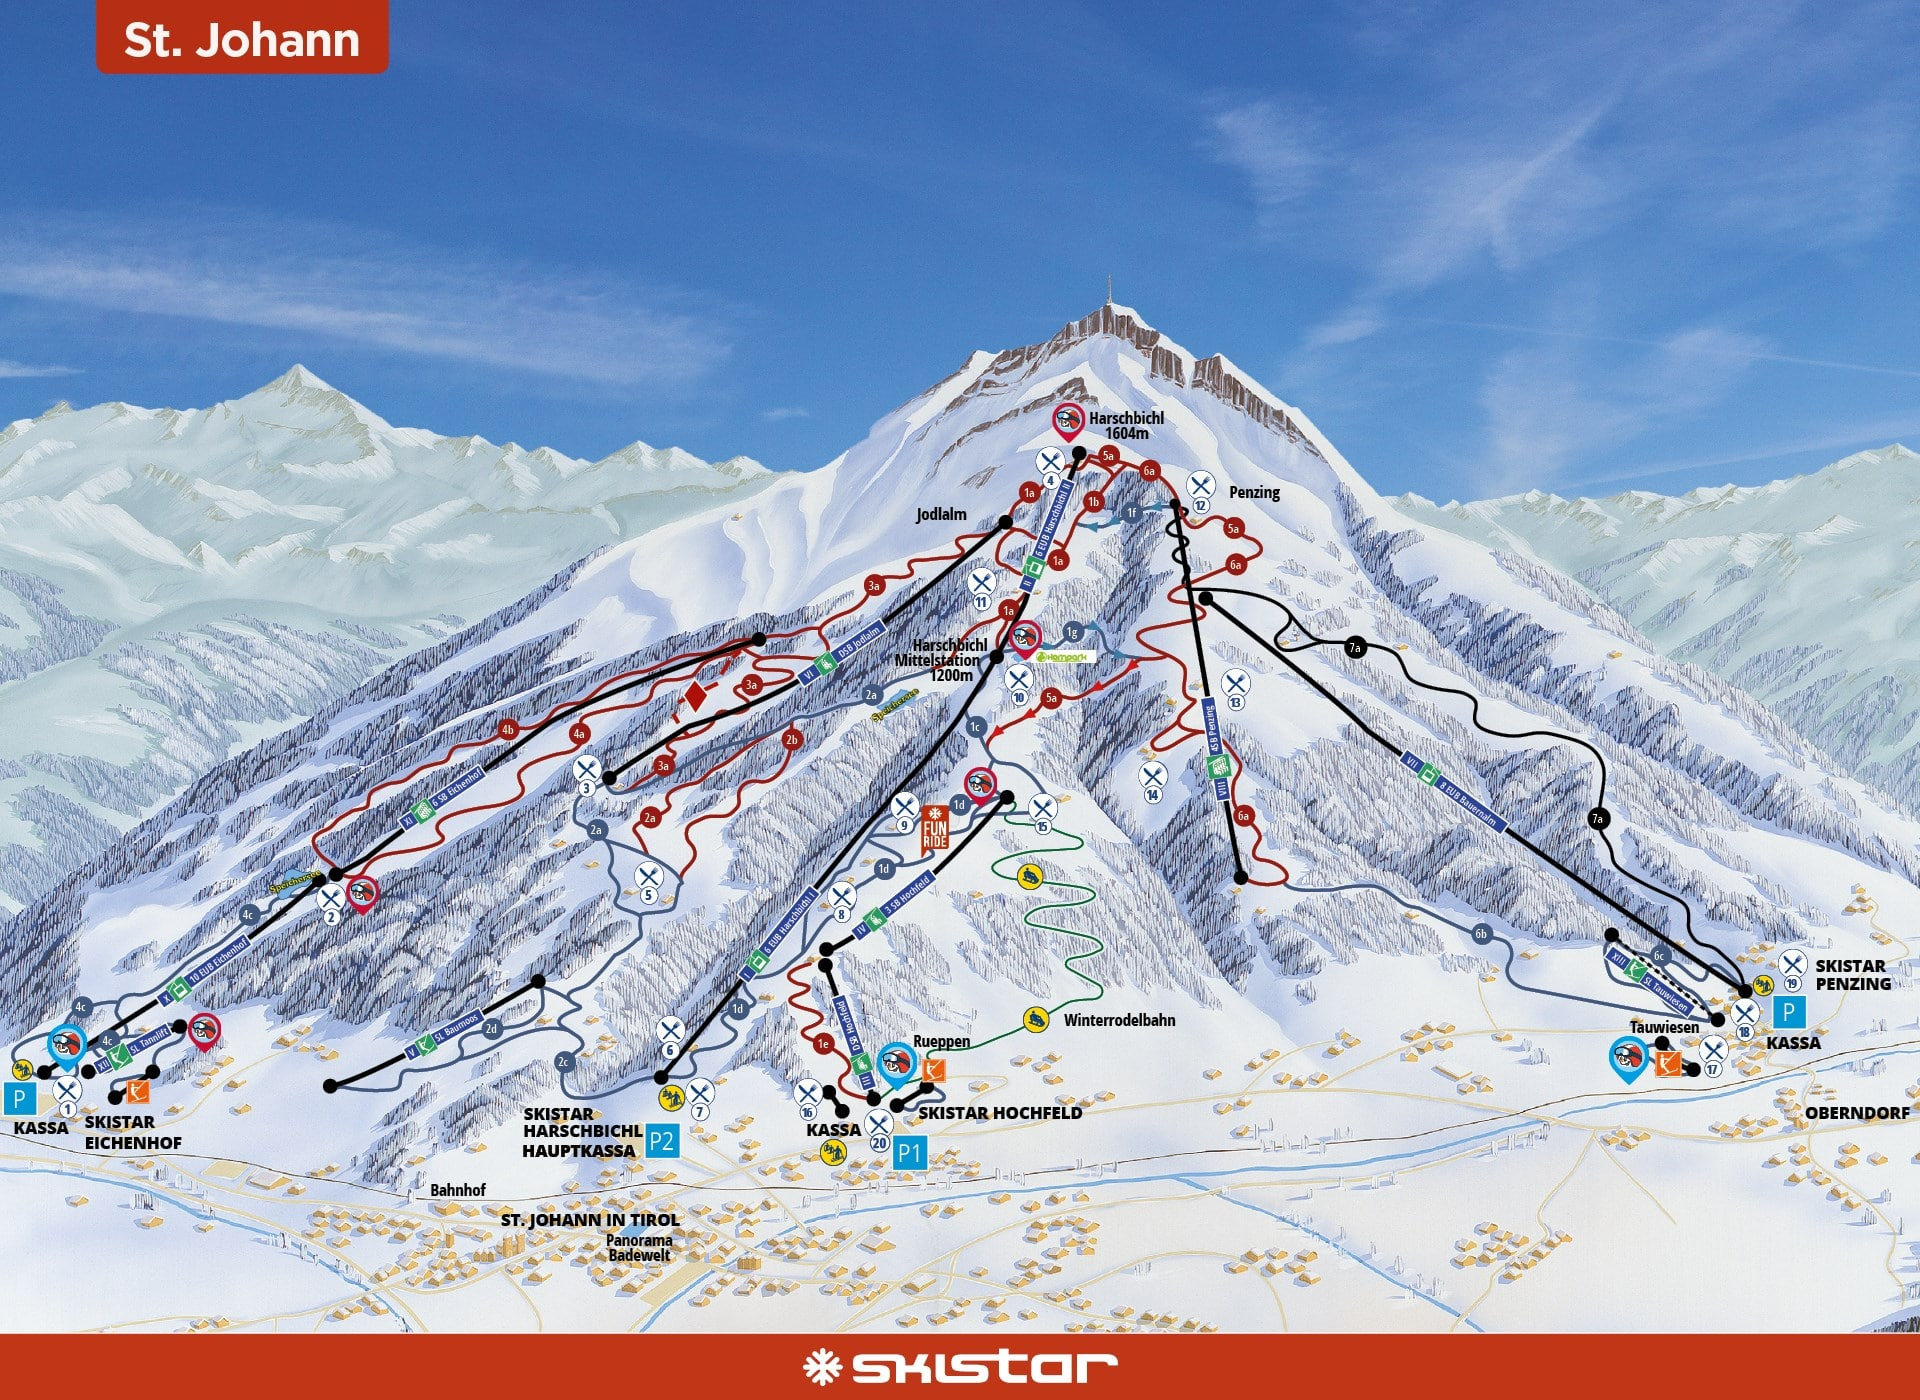 St Johann in Tirol Piste / Trail Map